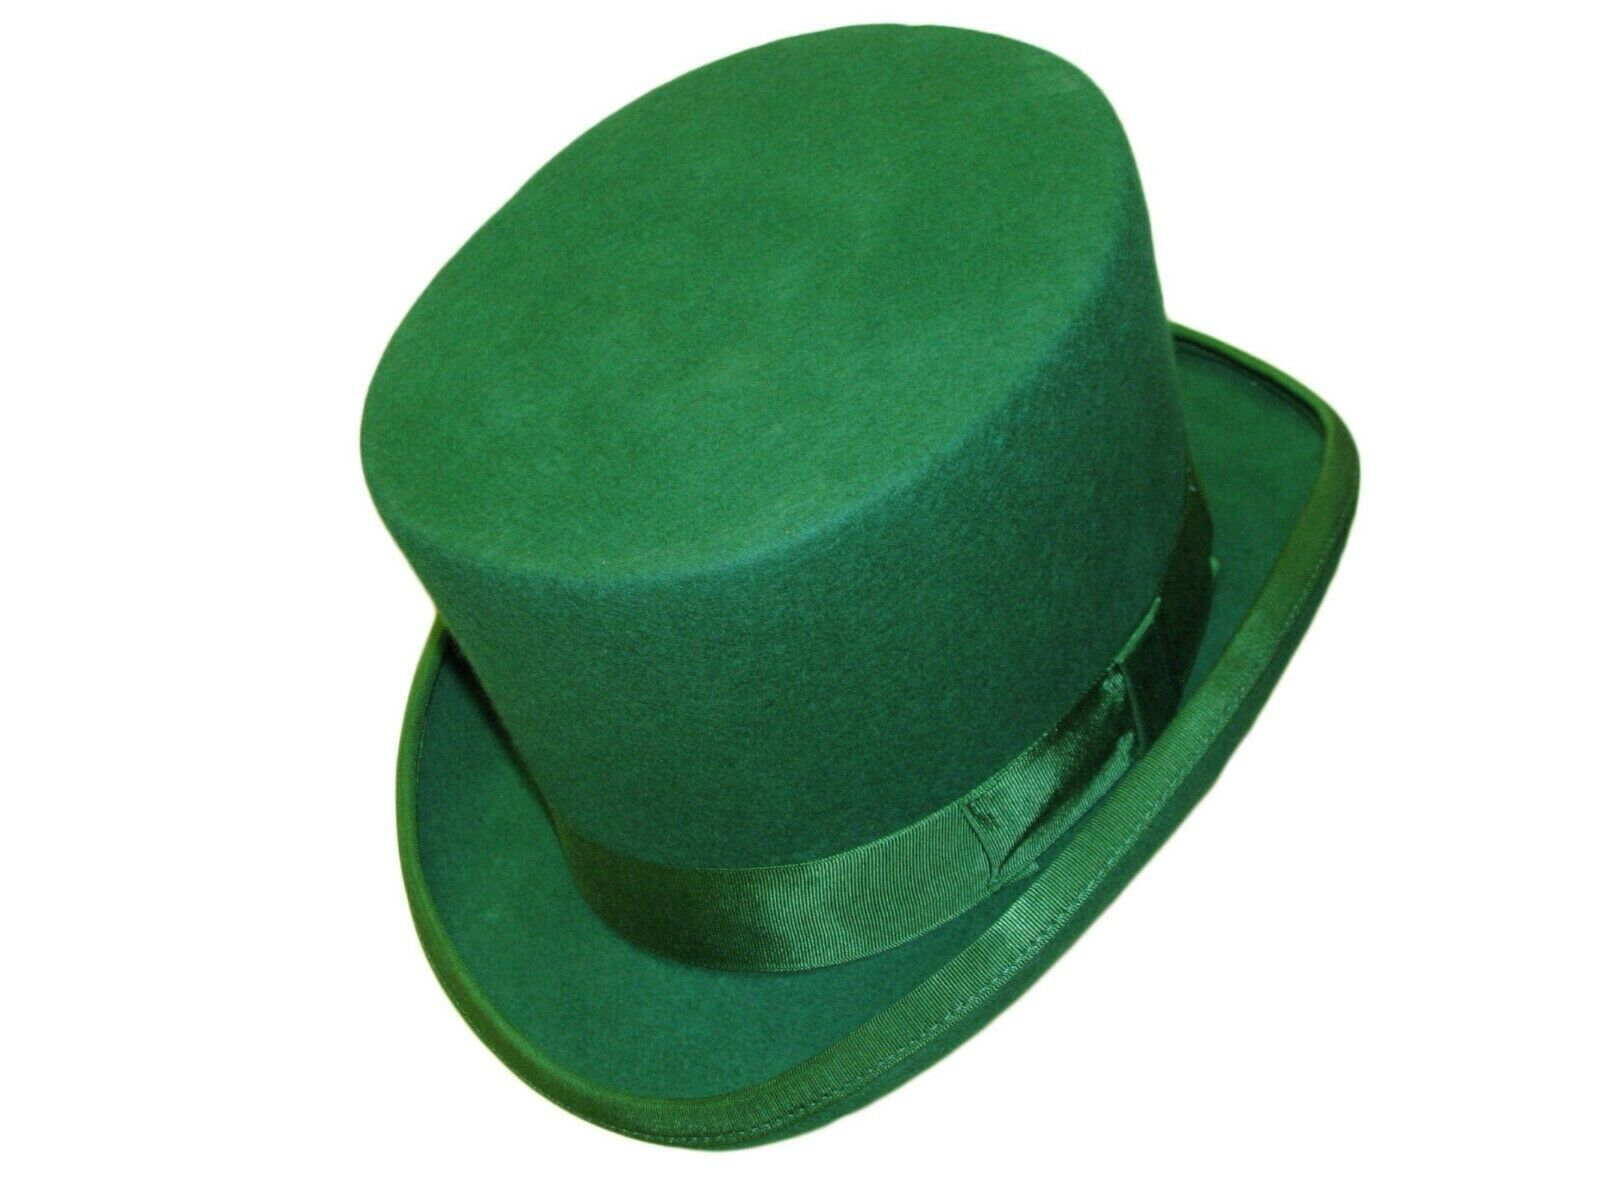 Green Bowler Hat Quality Hand Made 100/% Wool Wedding Ascot Hat Colours All Sizes